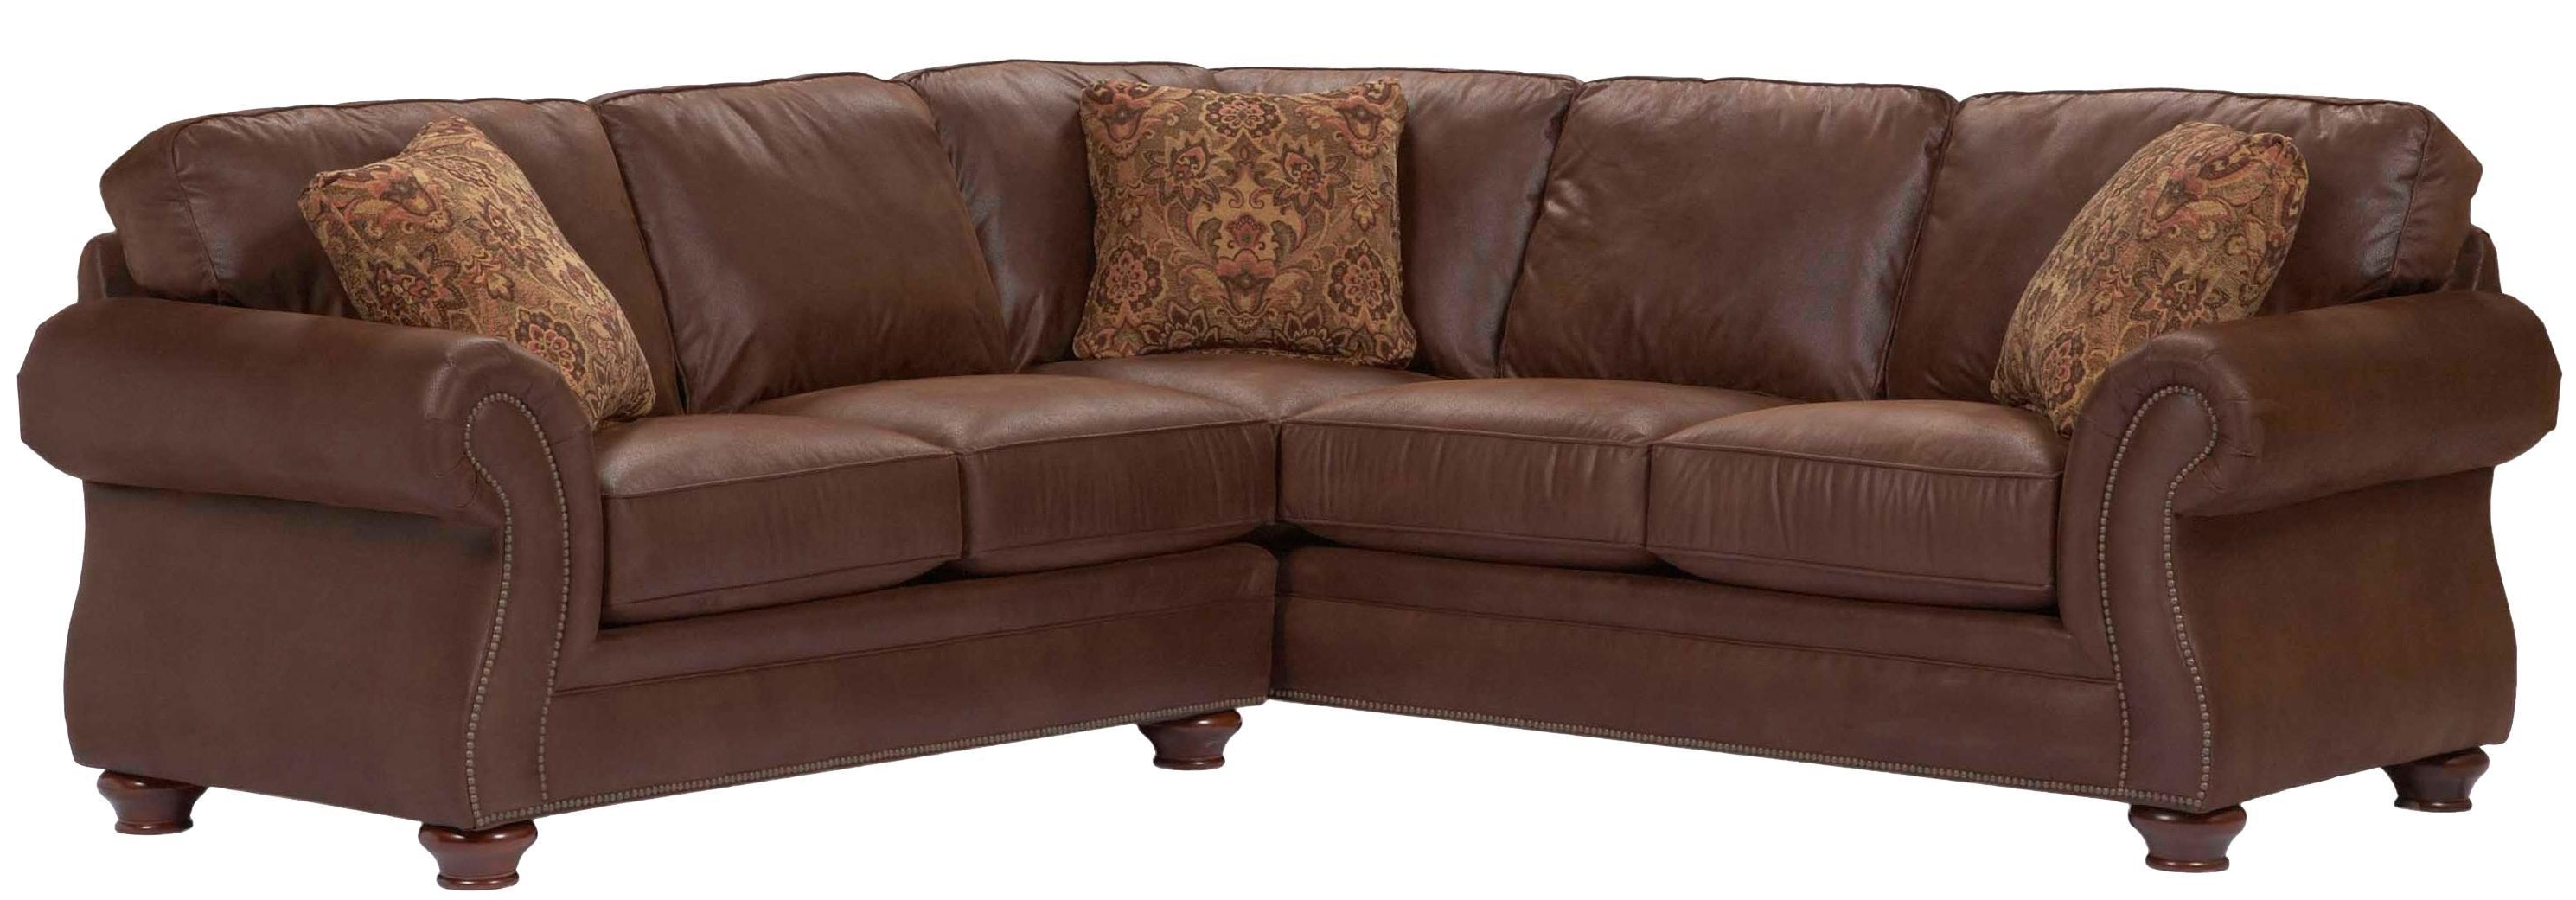 Most Recent Broyhill Furniture Laramie 2 Piece Corner Sectional Sofa – Ahfa Pertaining To Quincy Il Sectional Sofas (View 13 of 20)